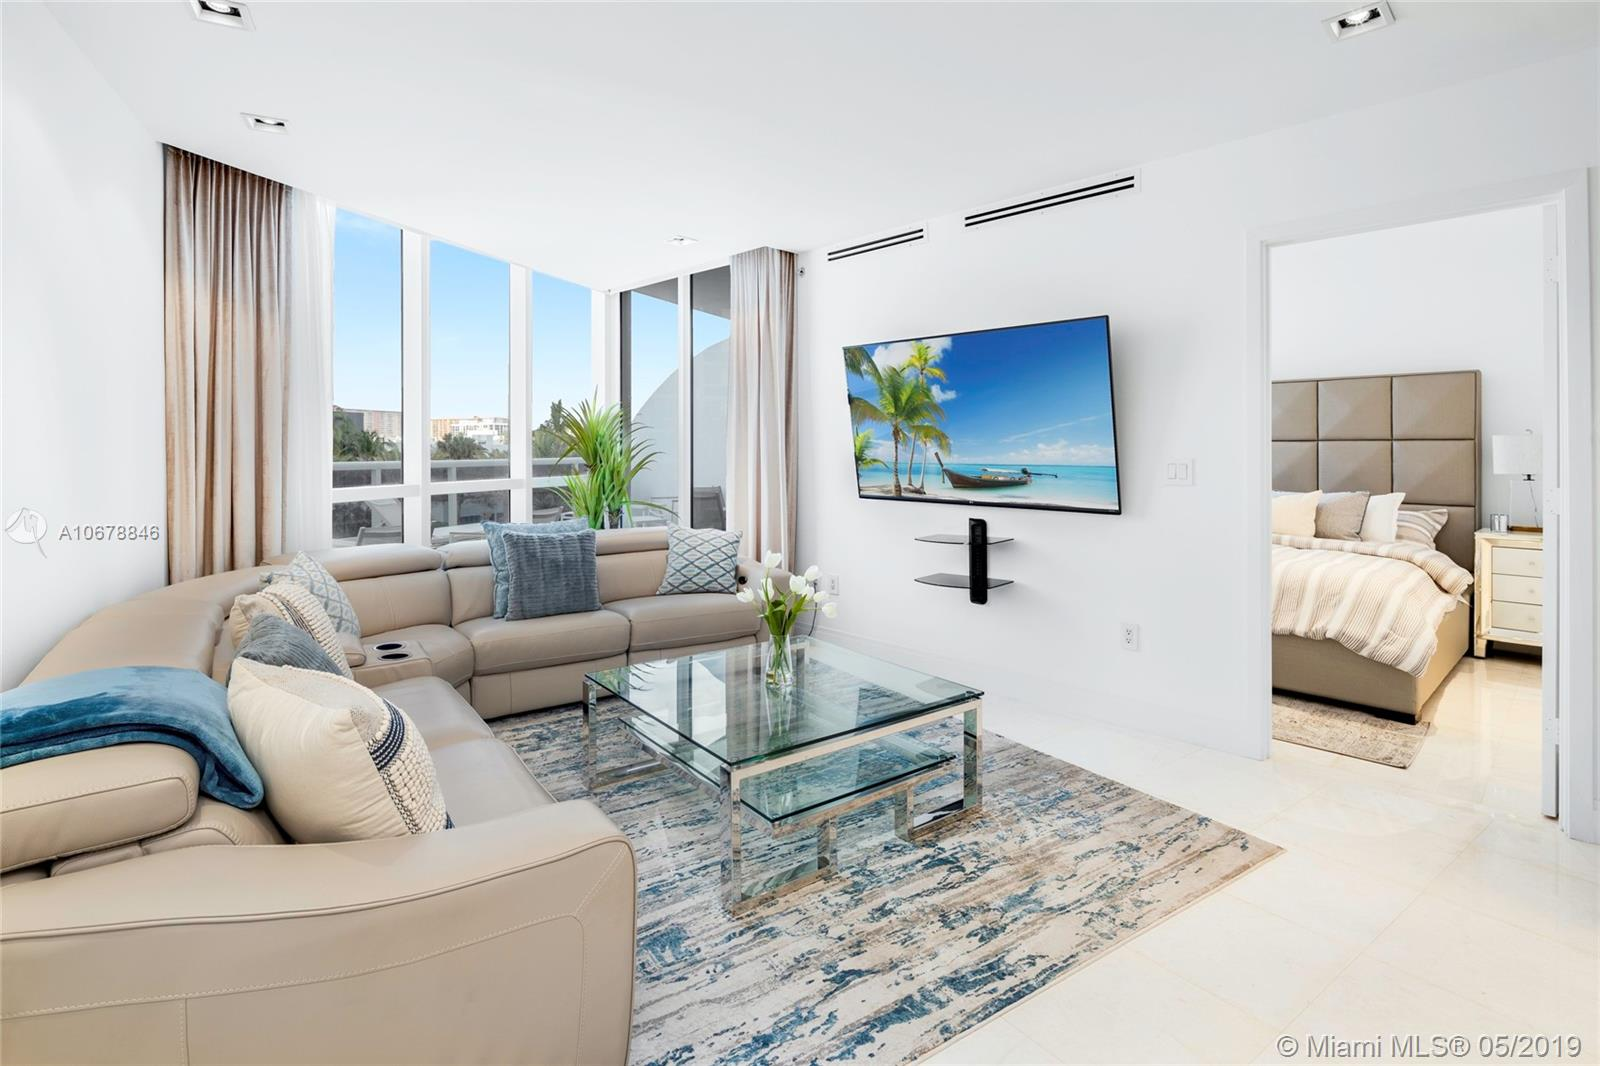 18201 Collins Ave, 508 - Sunny Isles Beach, Florida